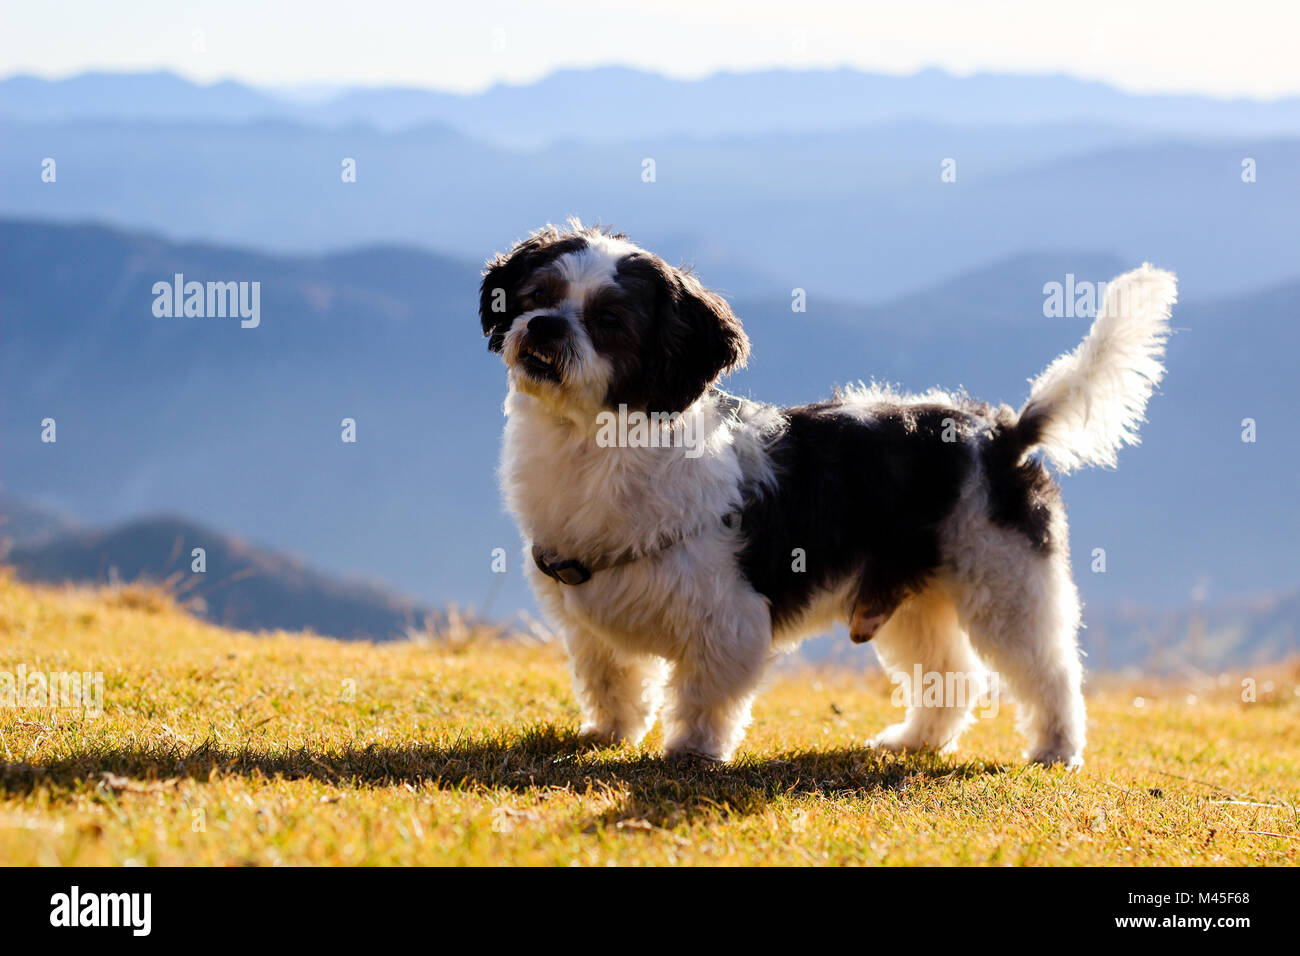 therapeutic dog in the mountain. - Stock Image